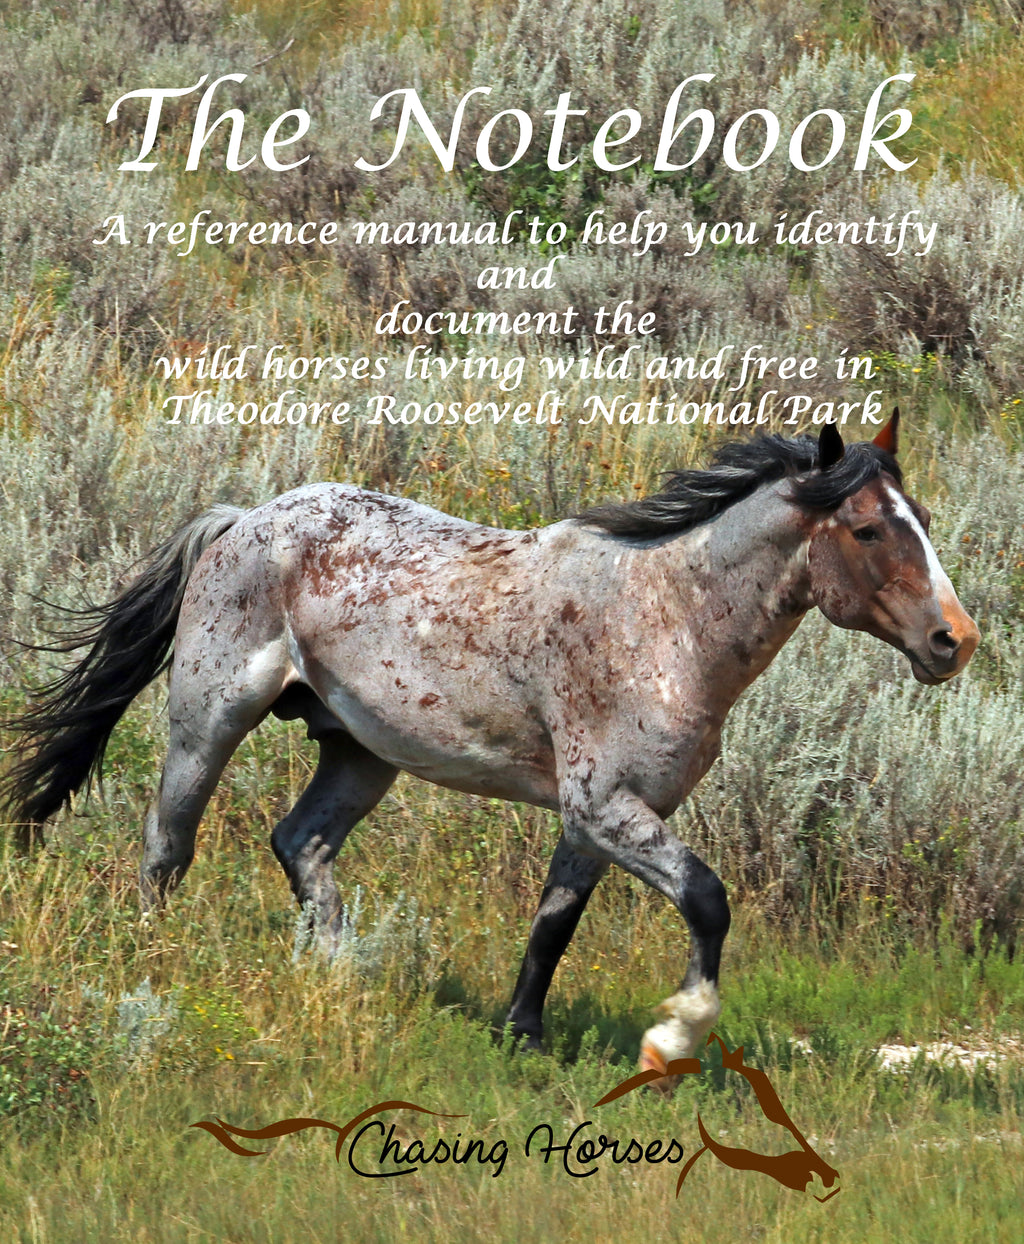 The Notebook PDF - Pre-order